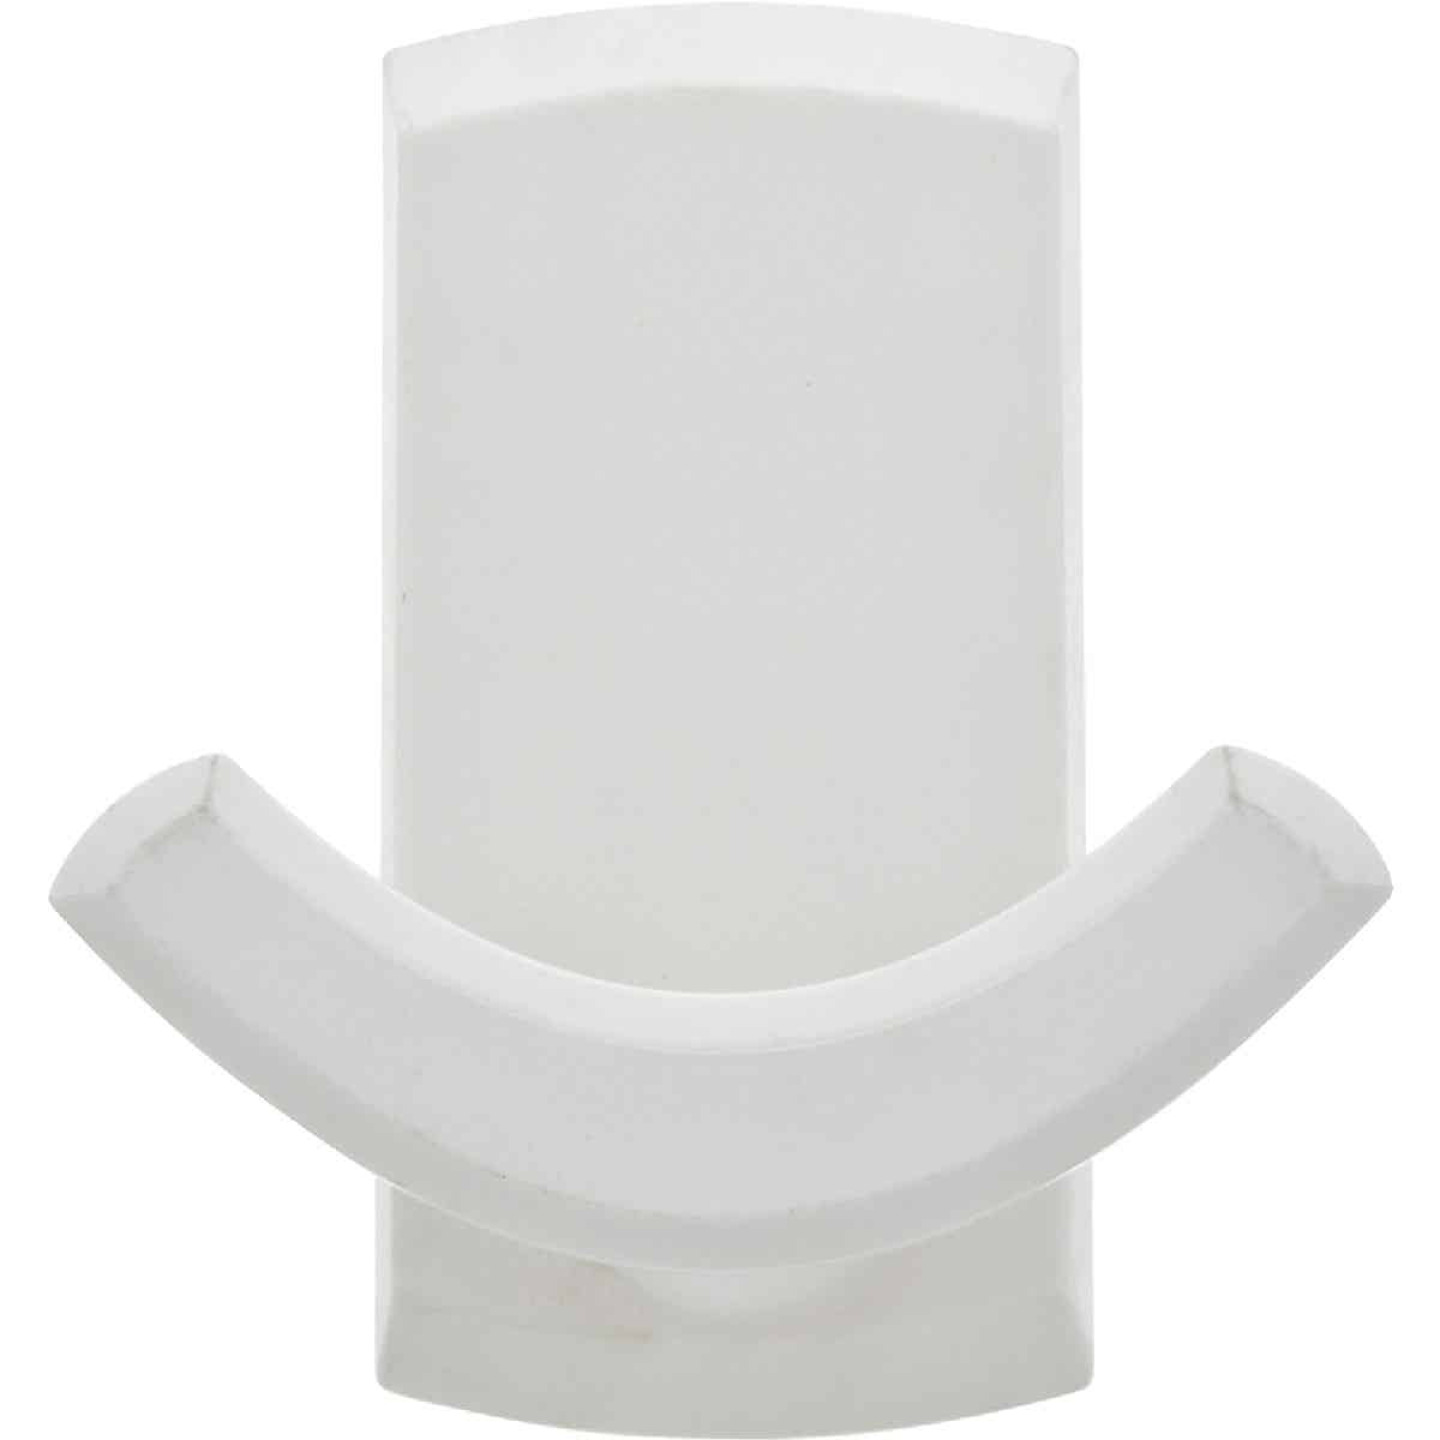 Hillman High and Mighty 20 Lb. Capacity White Rectangular Decorative Double Hook Image 2